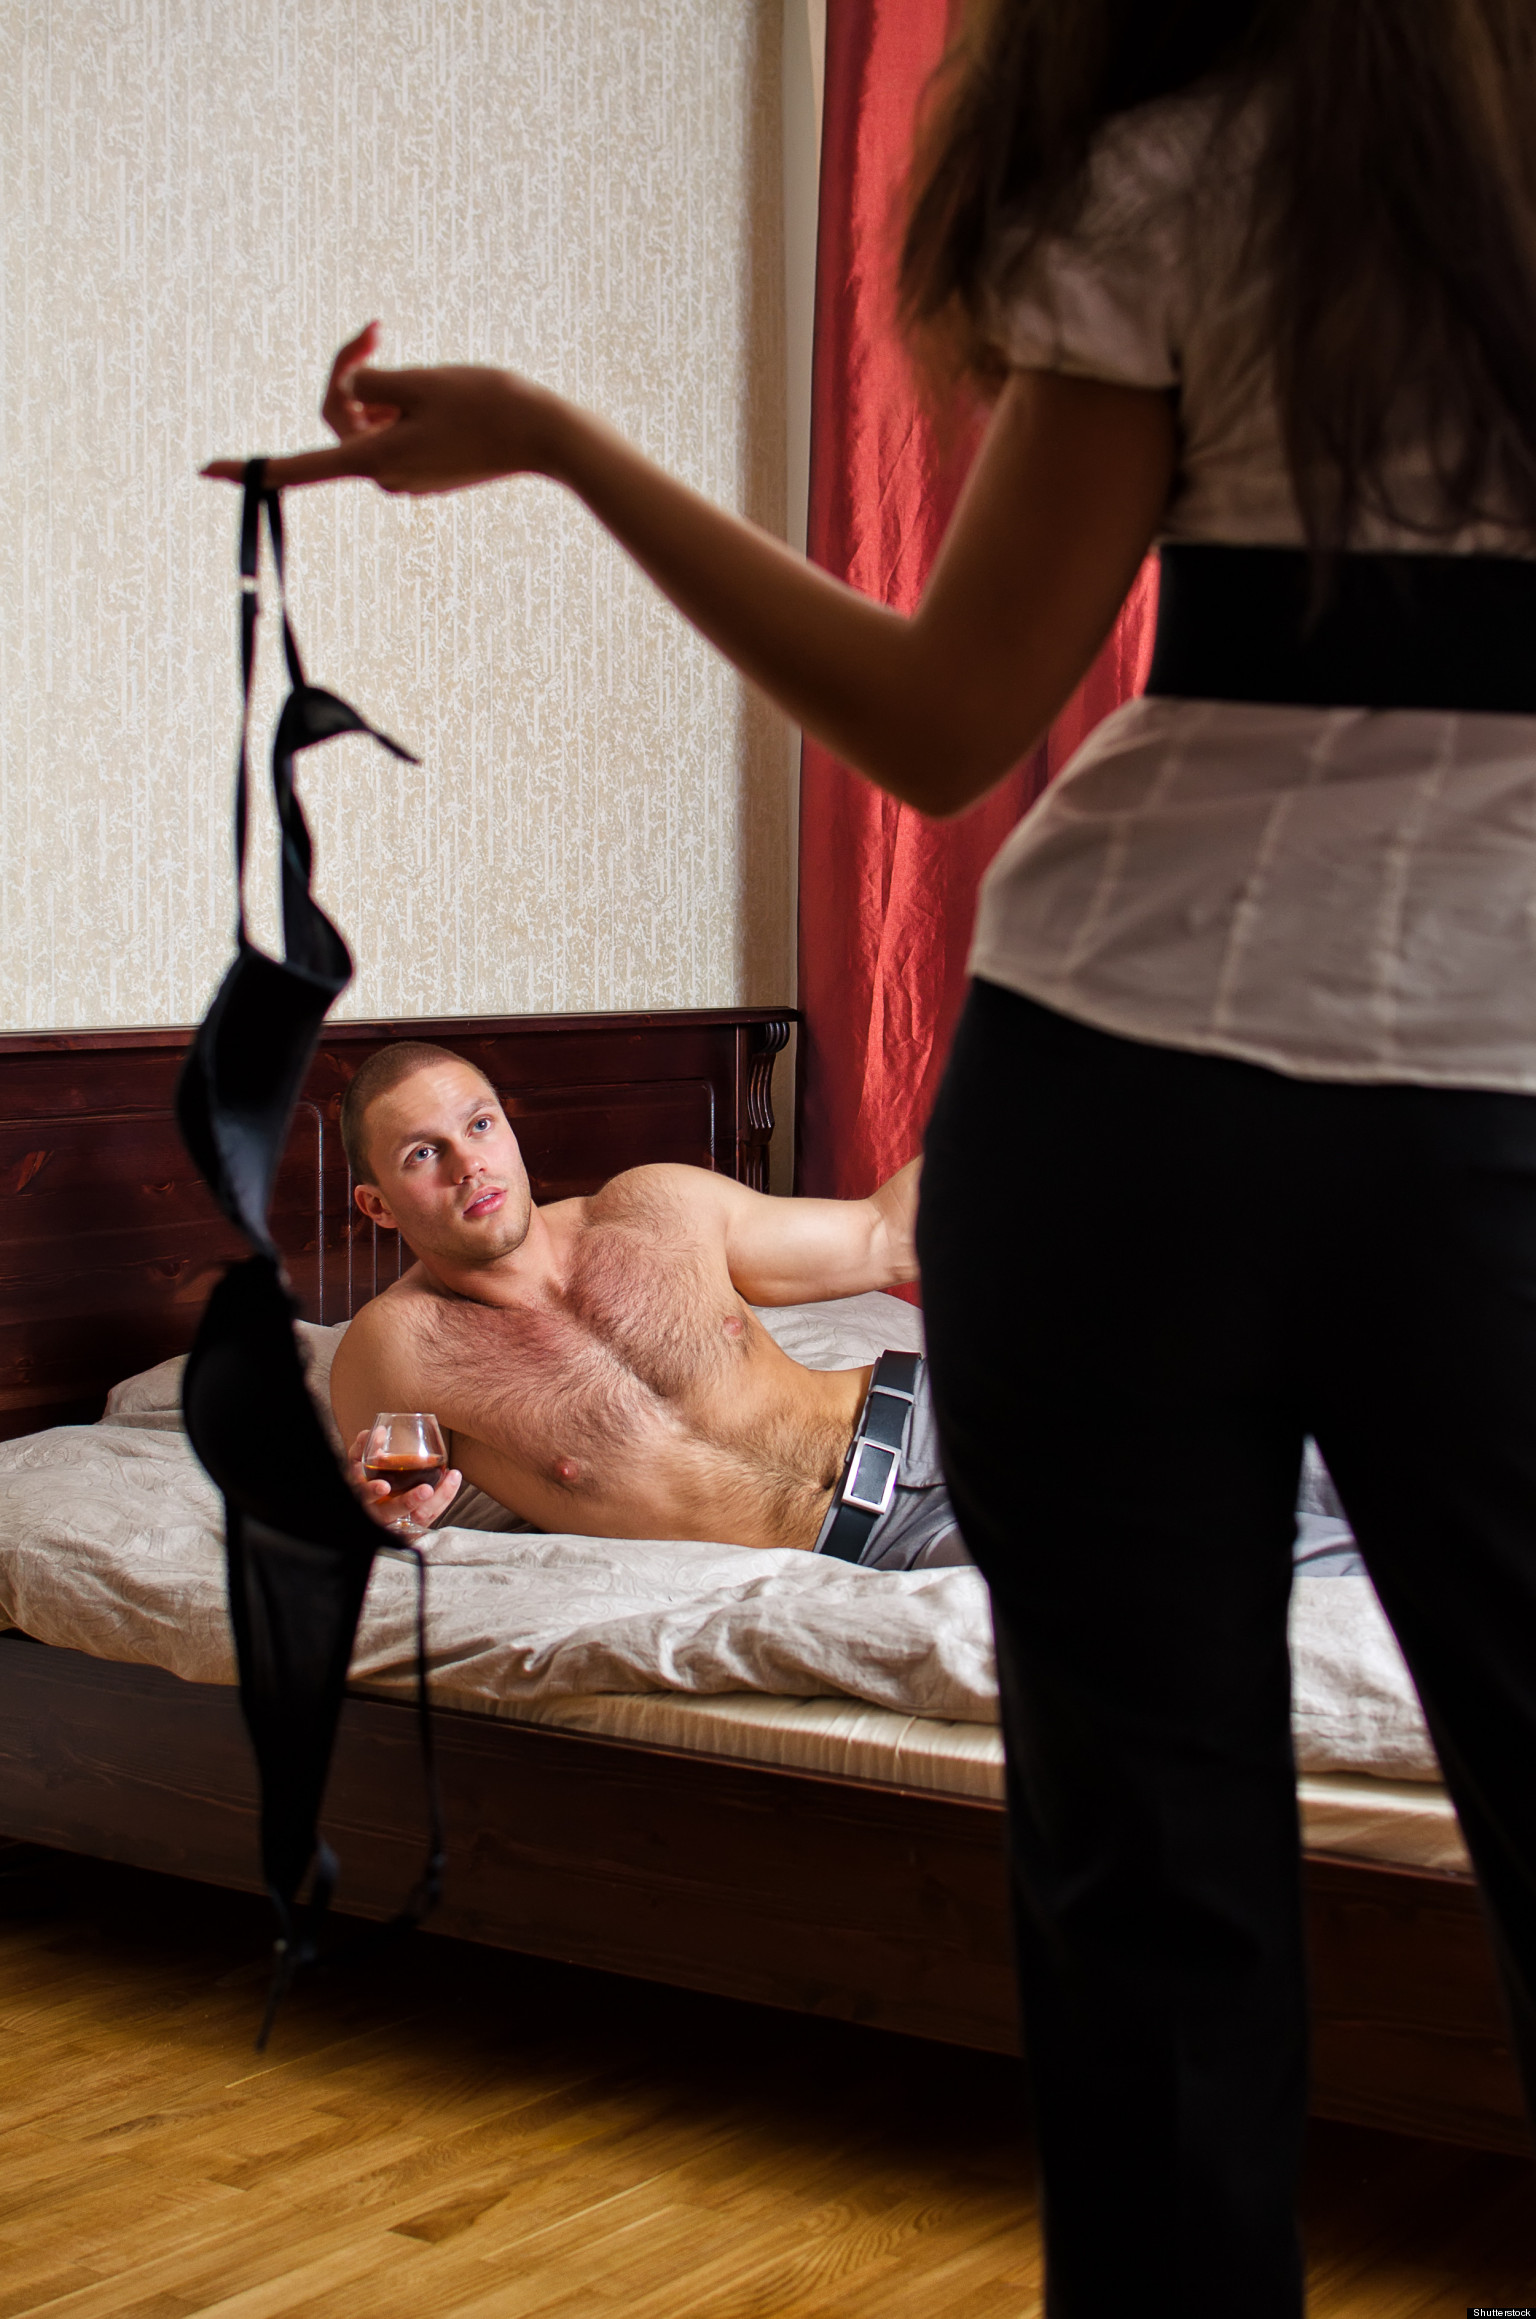 Husband by cheating caught The biggest